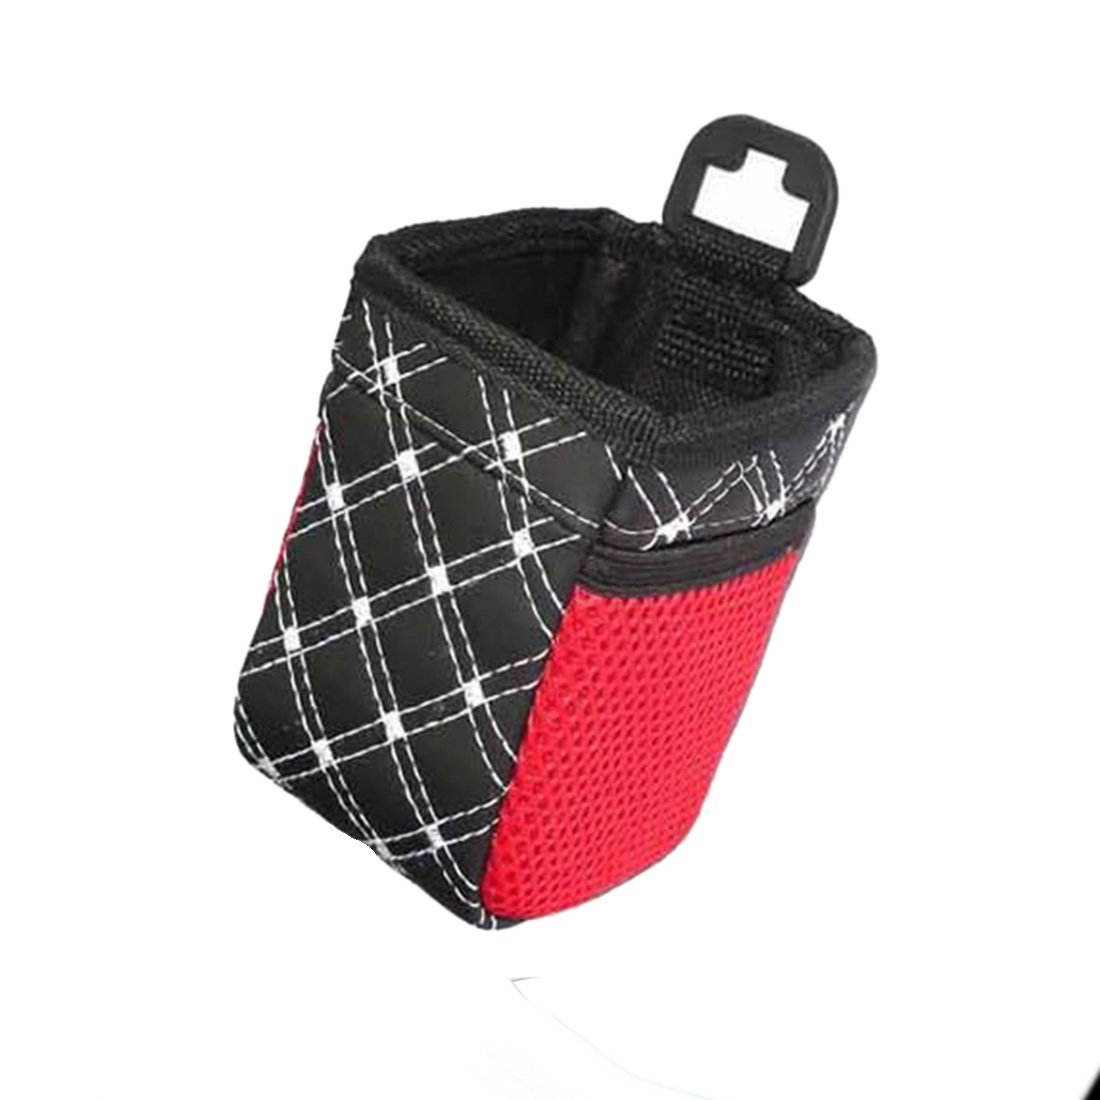 Grid Net Car Auto Air Vent Outlet Sundries Cell Phone Storage Bag Box Case Pouch Pocket Holder - Random Color